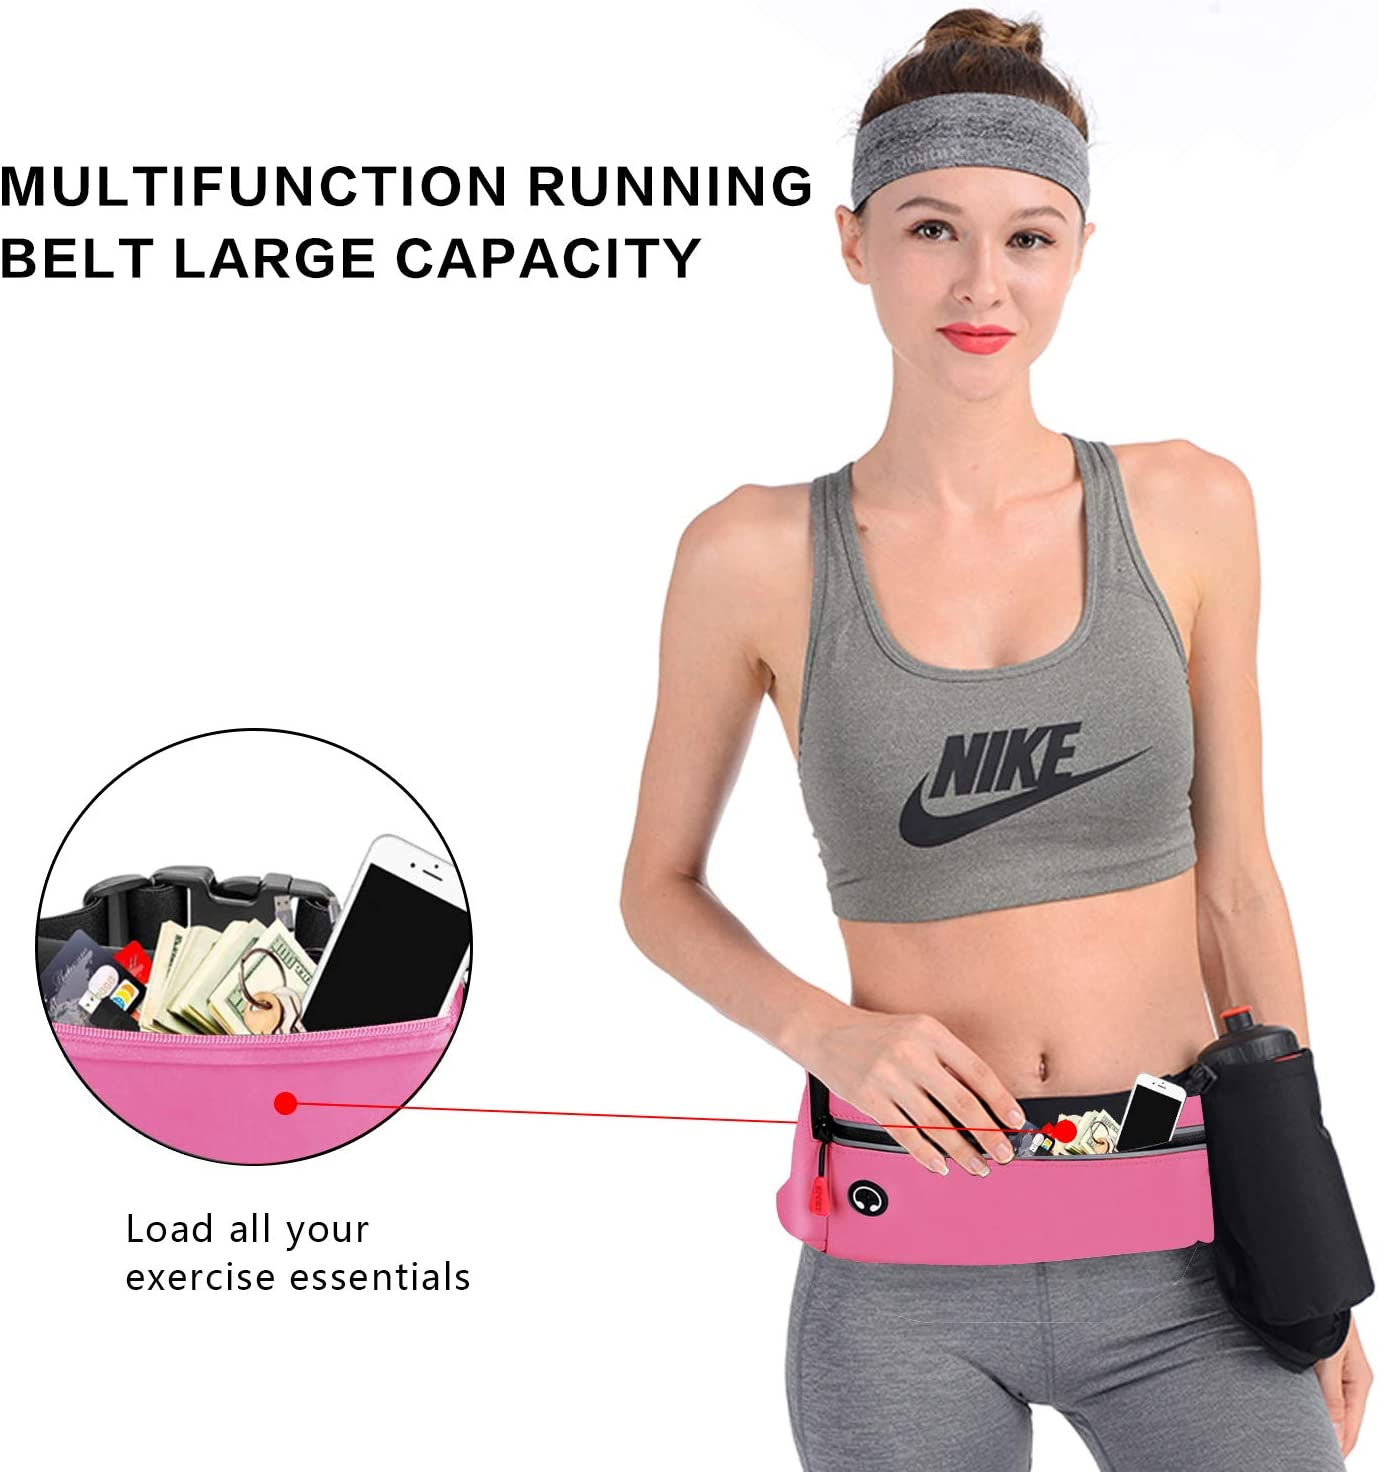 HONGKIT Waist Pack Bag Fanny Pack for Men /& Women Hip Bum Bag with Adjustable Strap for Outdoors Workout Traveling Casual Running Hiking Cycling